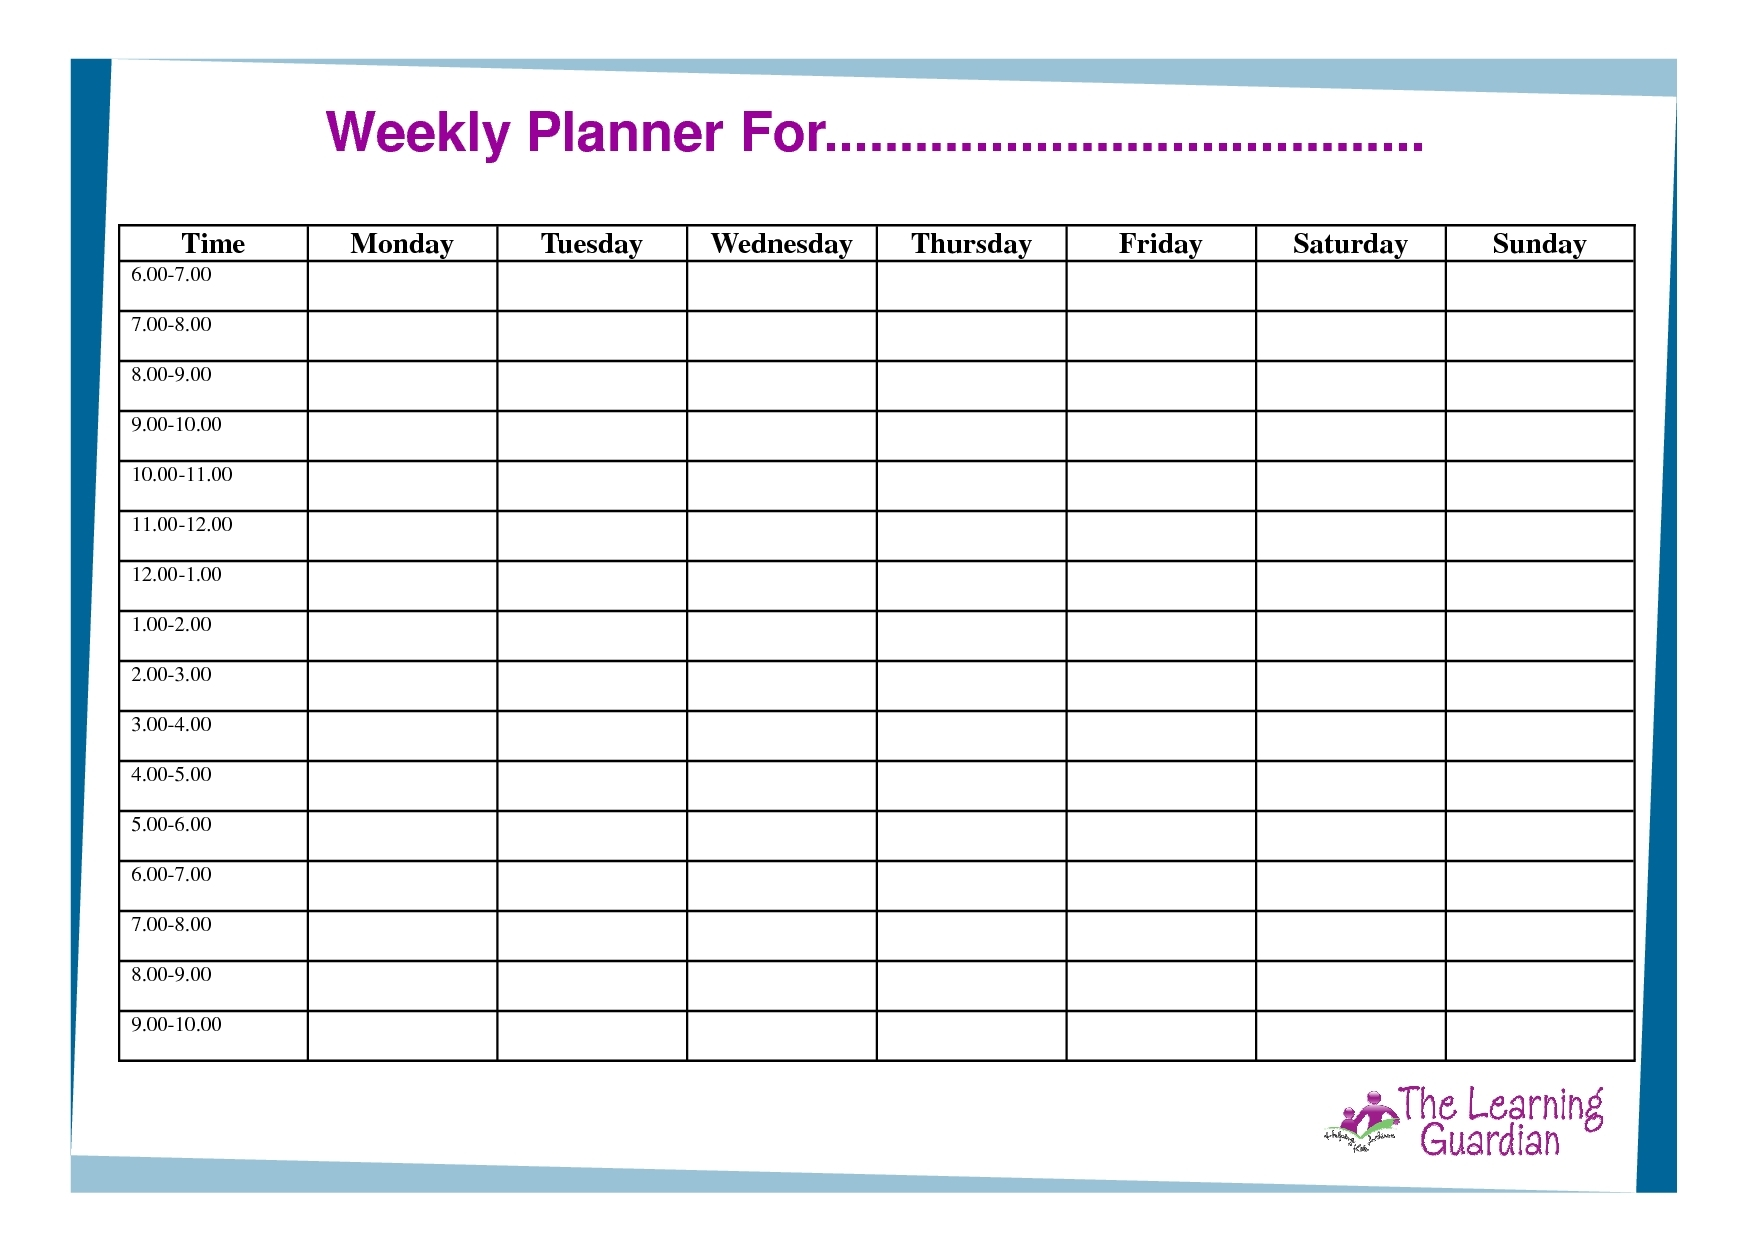 Week Calendar Template Day Blank | Smorad regarding Free Printable Template For Day Of The Week Schedule